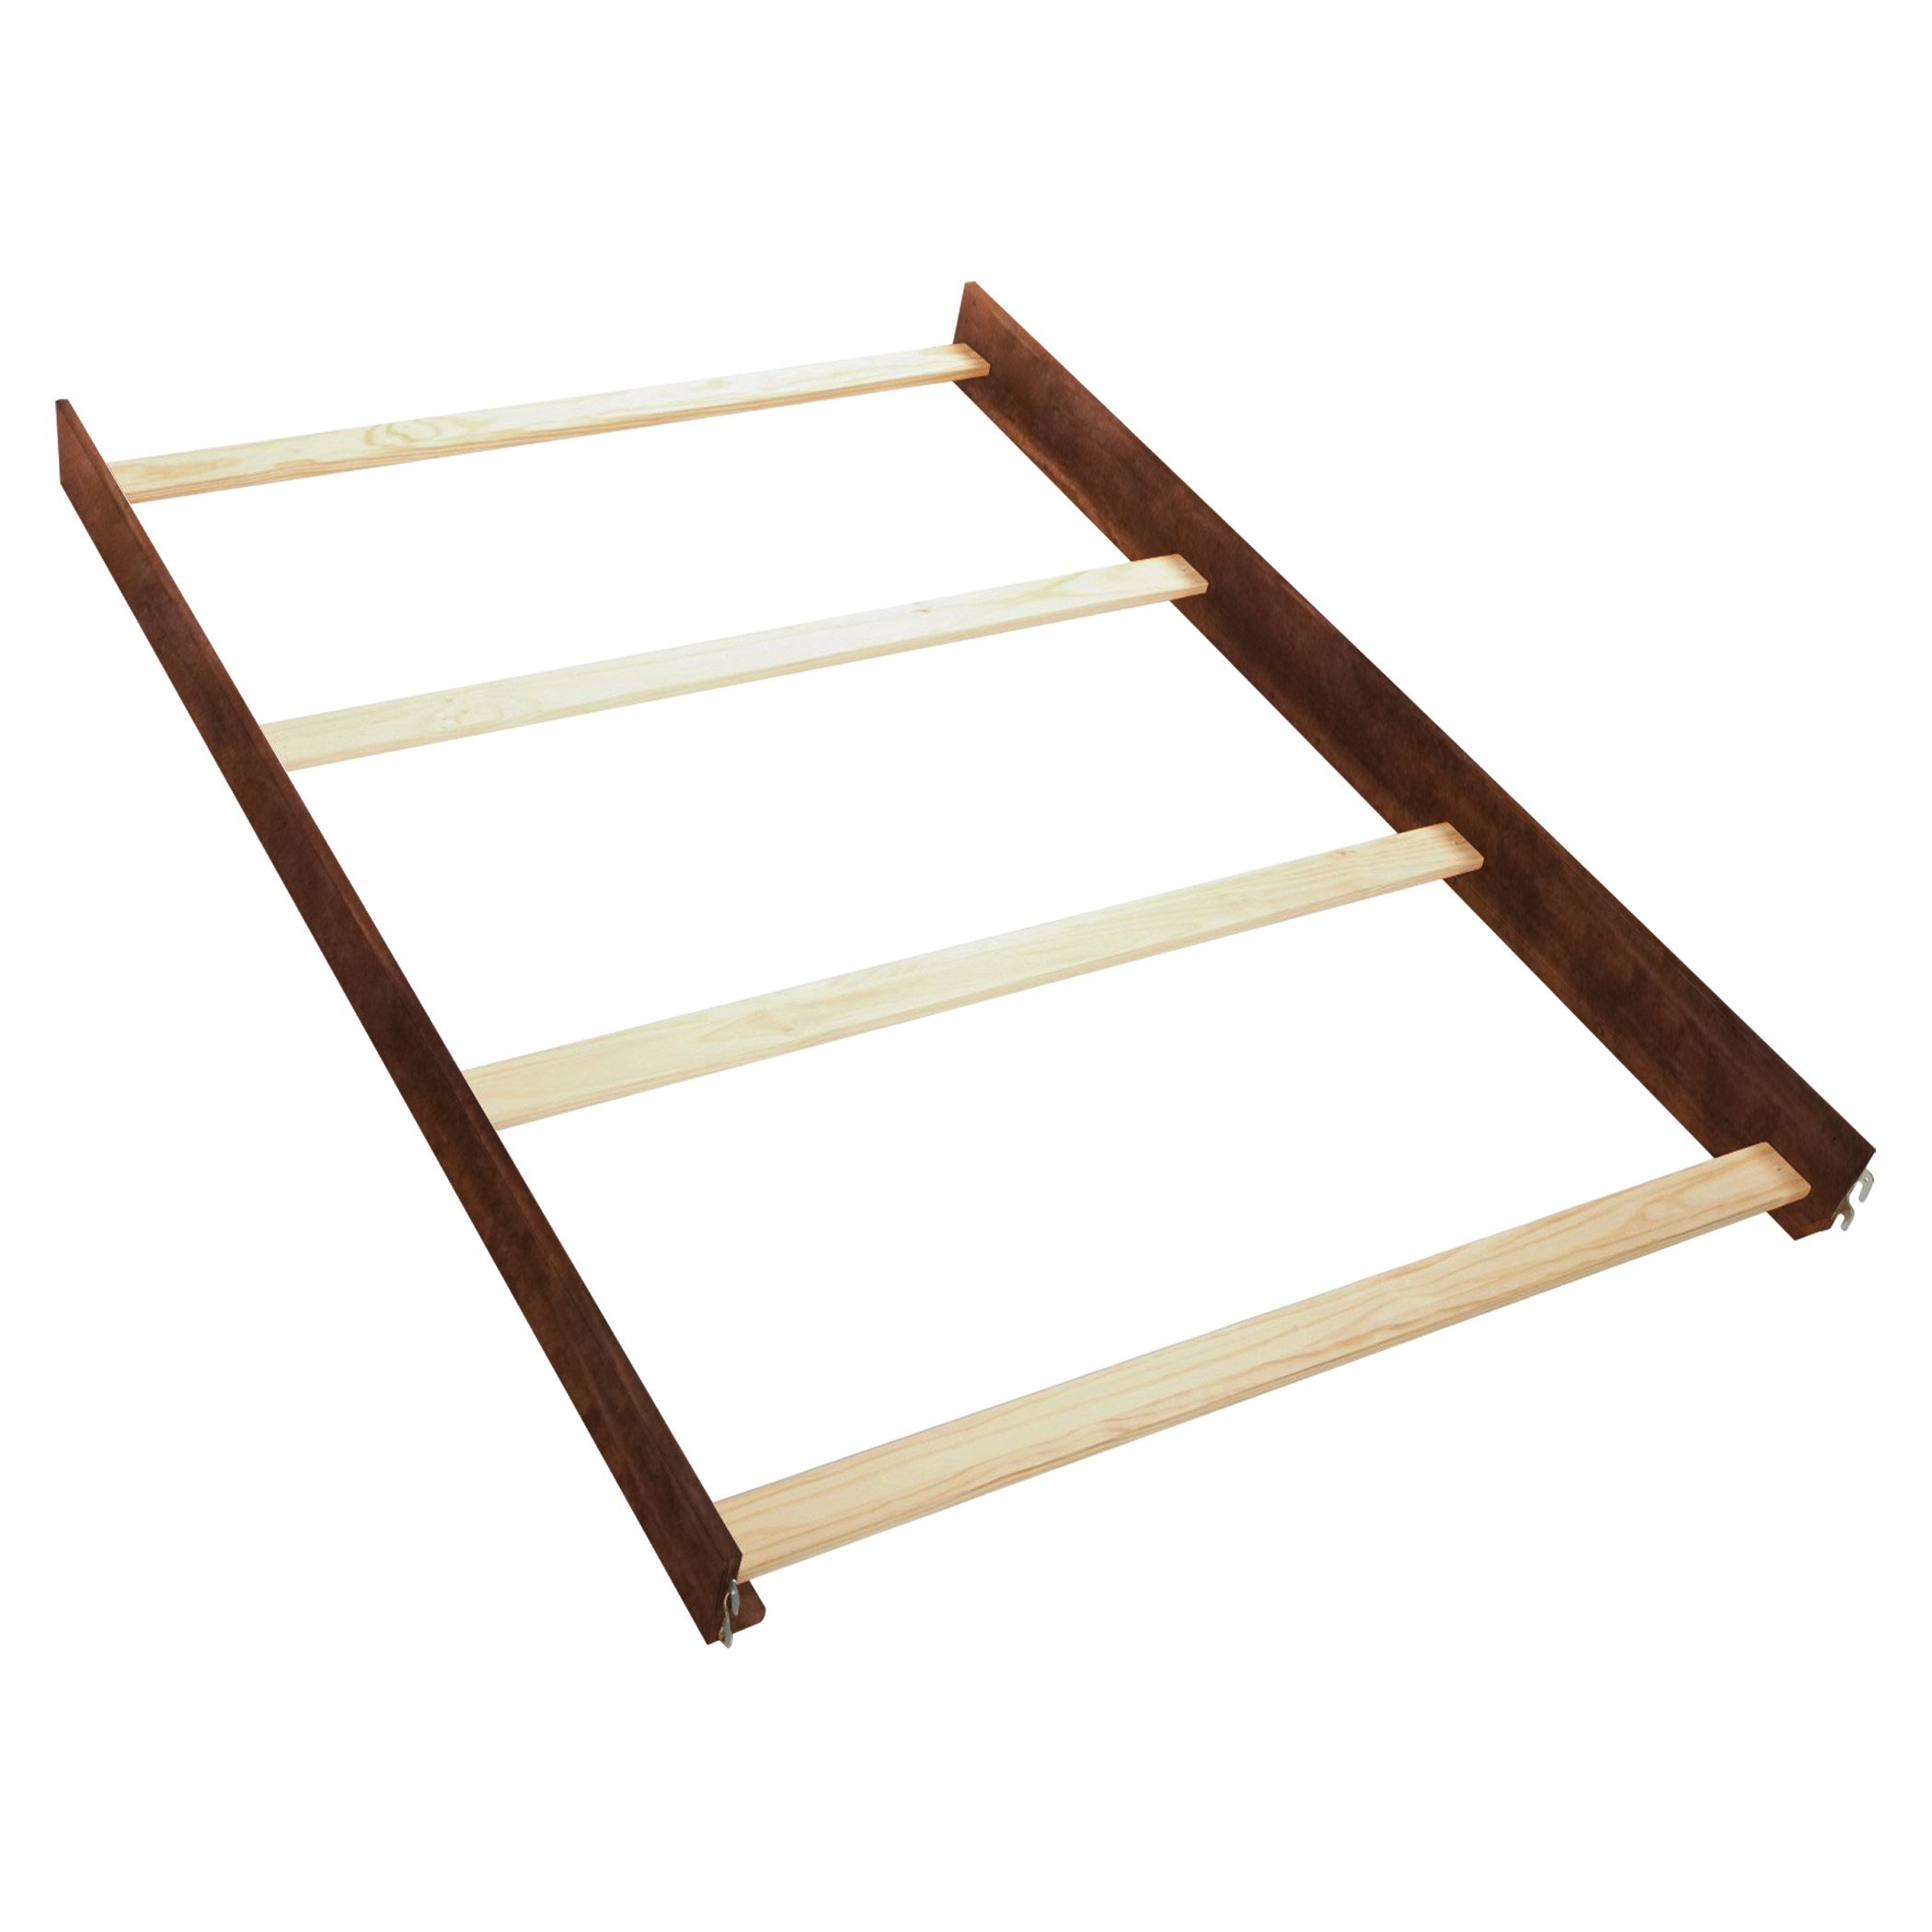 Simmons Kids Full Size Wood Bed Rails, Espresso Truffle by Simmons Kids